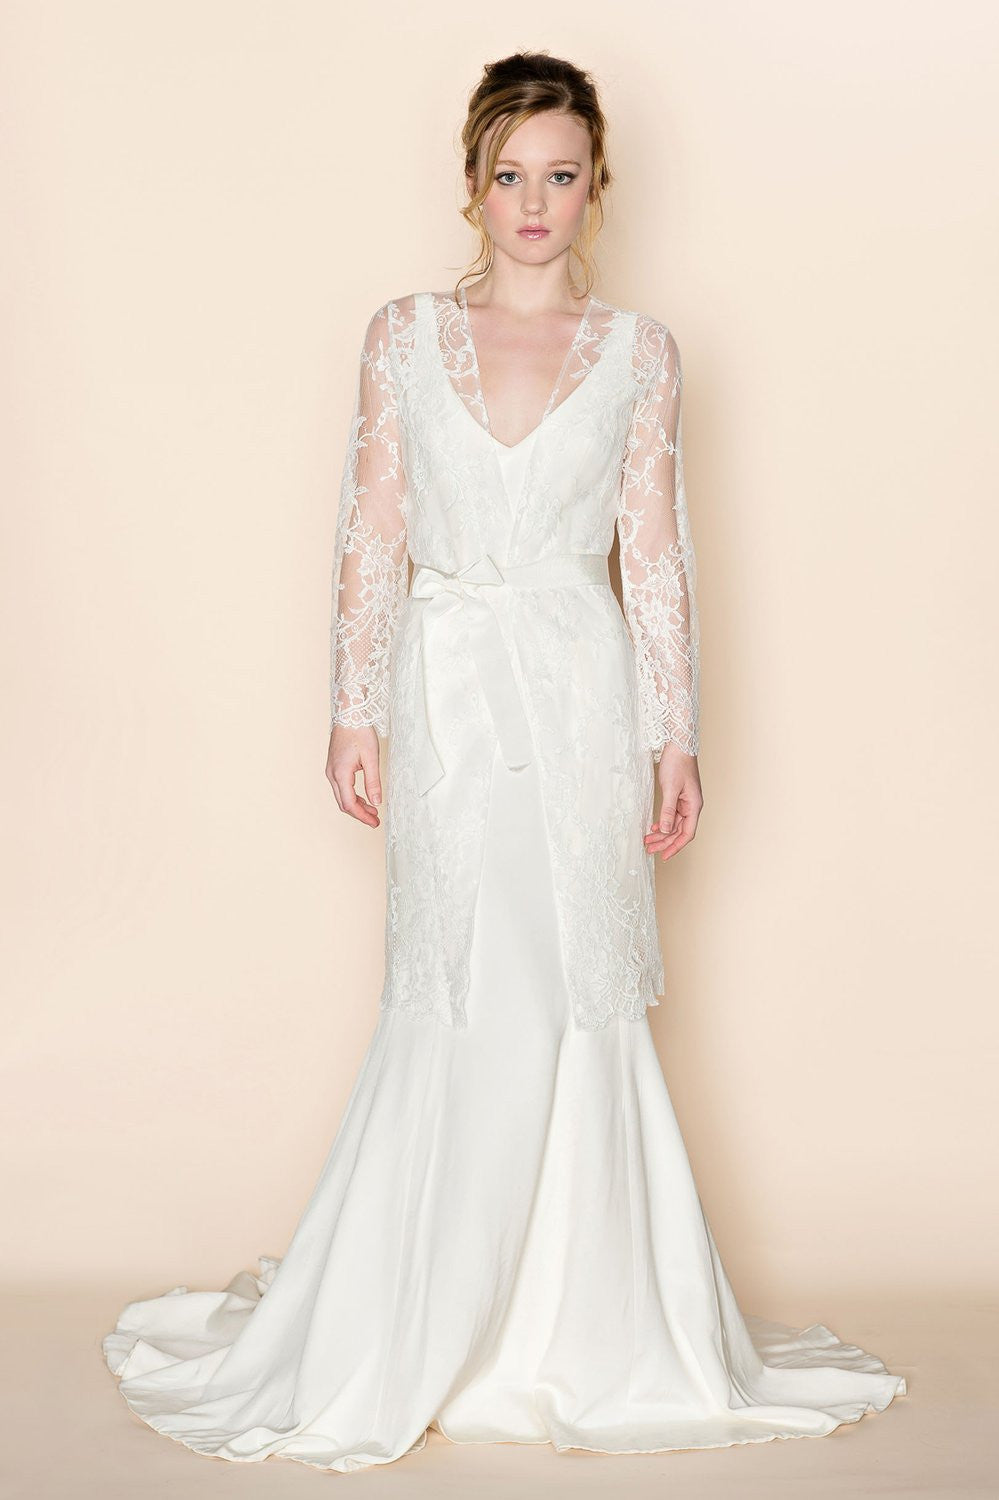 Catherine French Lace Bridal Robe Coat Cover Up Style 216